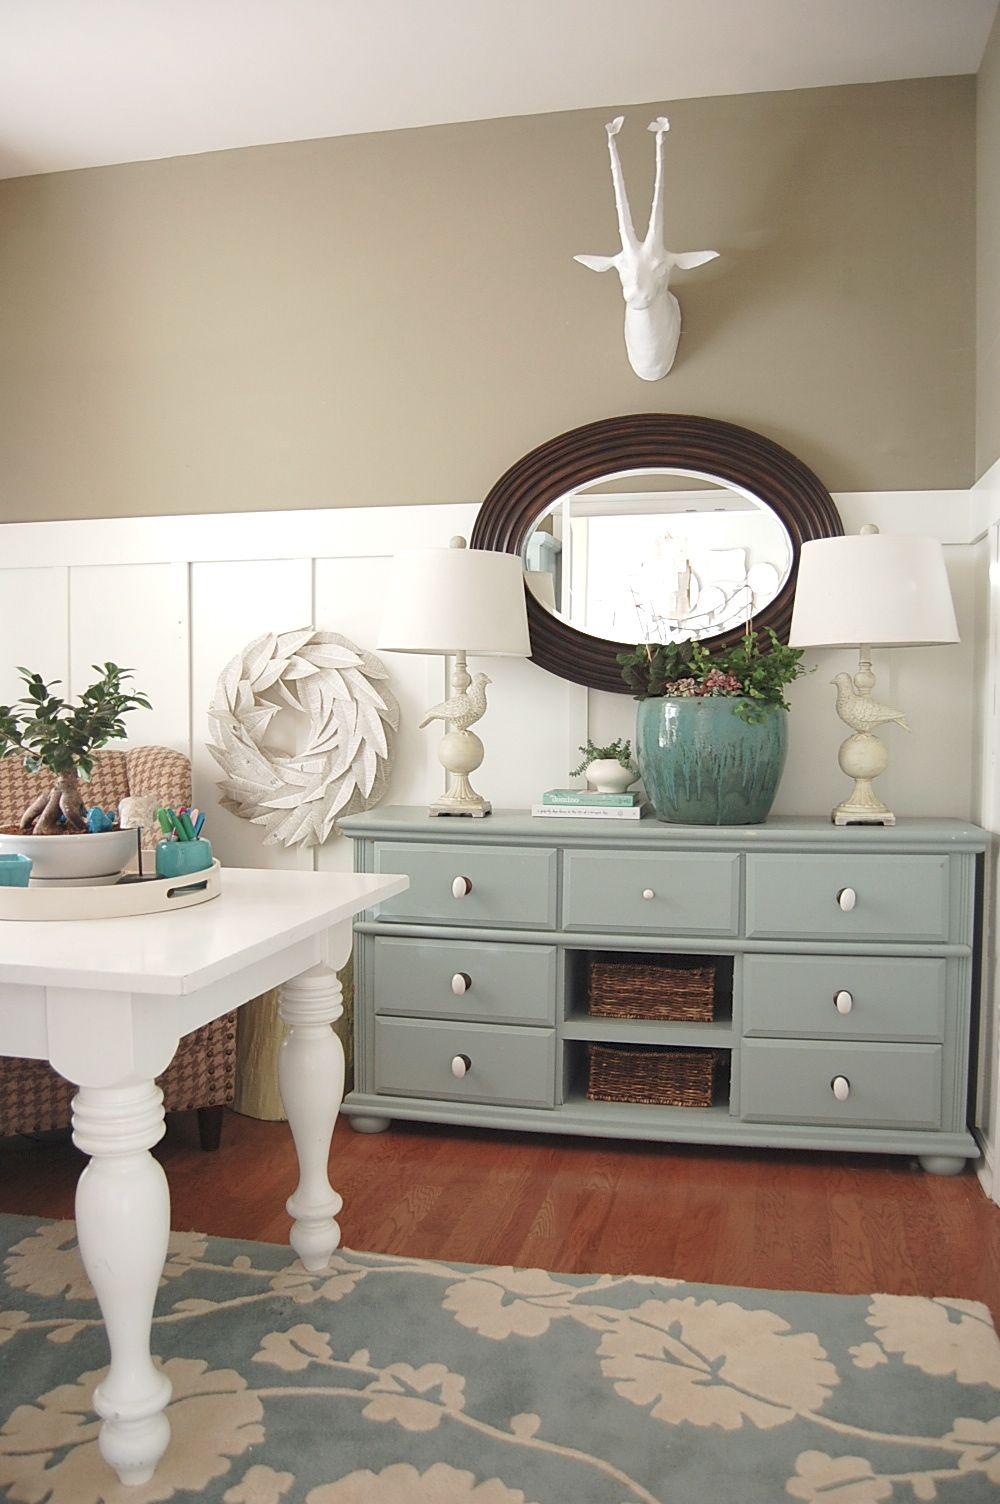 Tan walls sherwin williams rice grain with the blue gray whit and dark accents